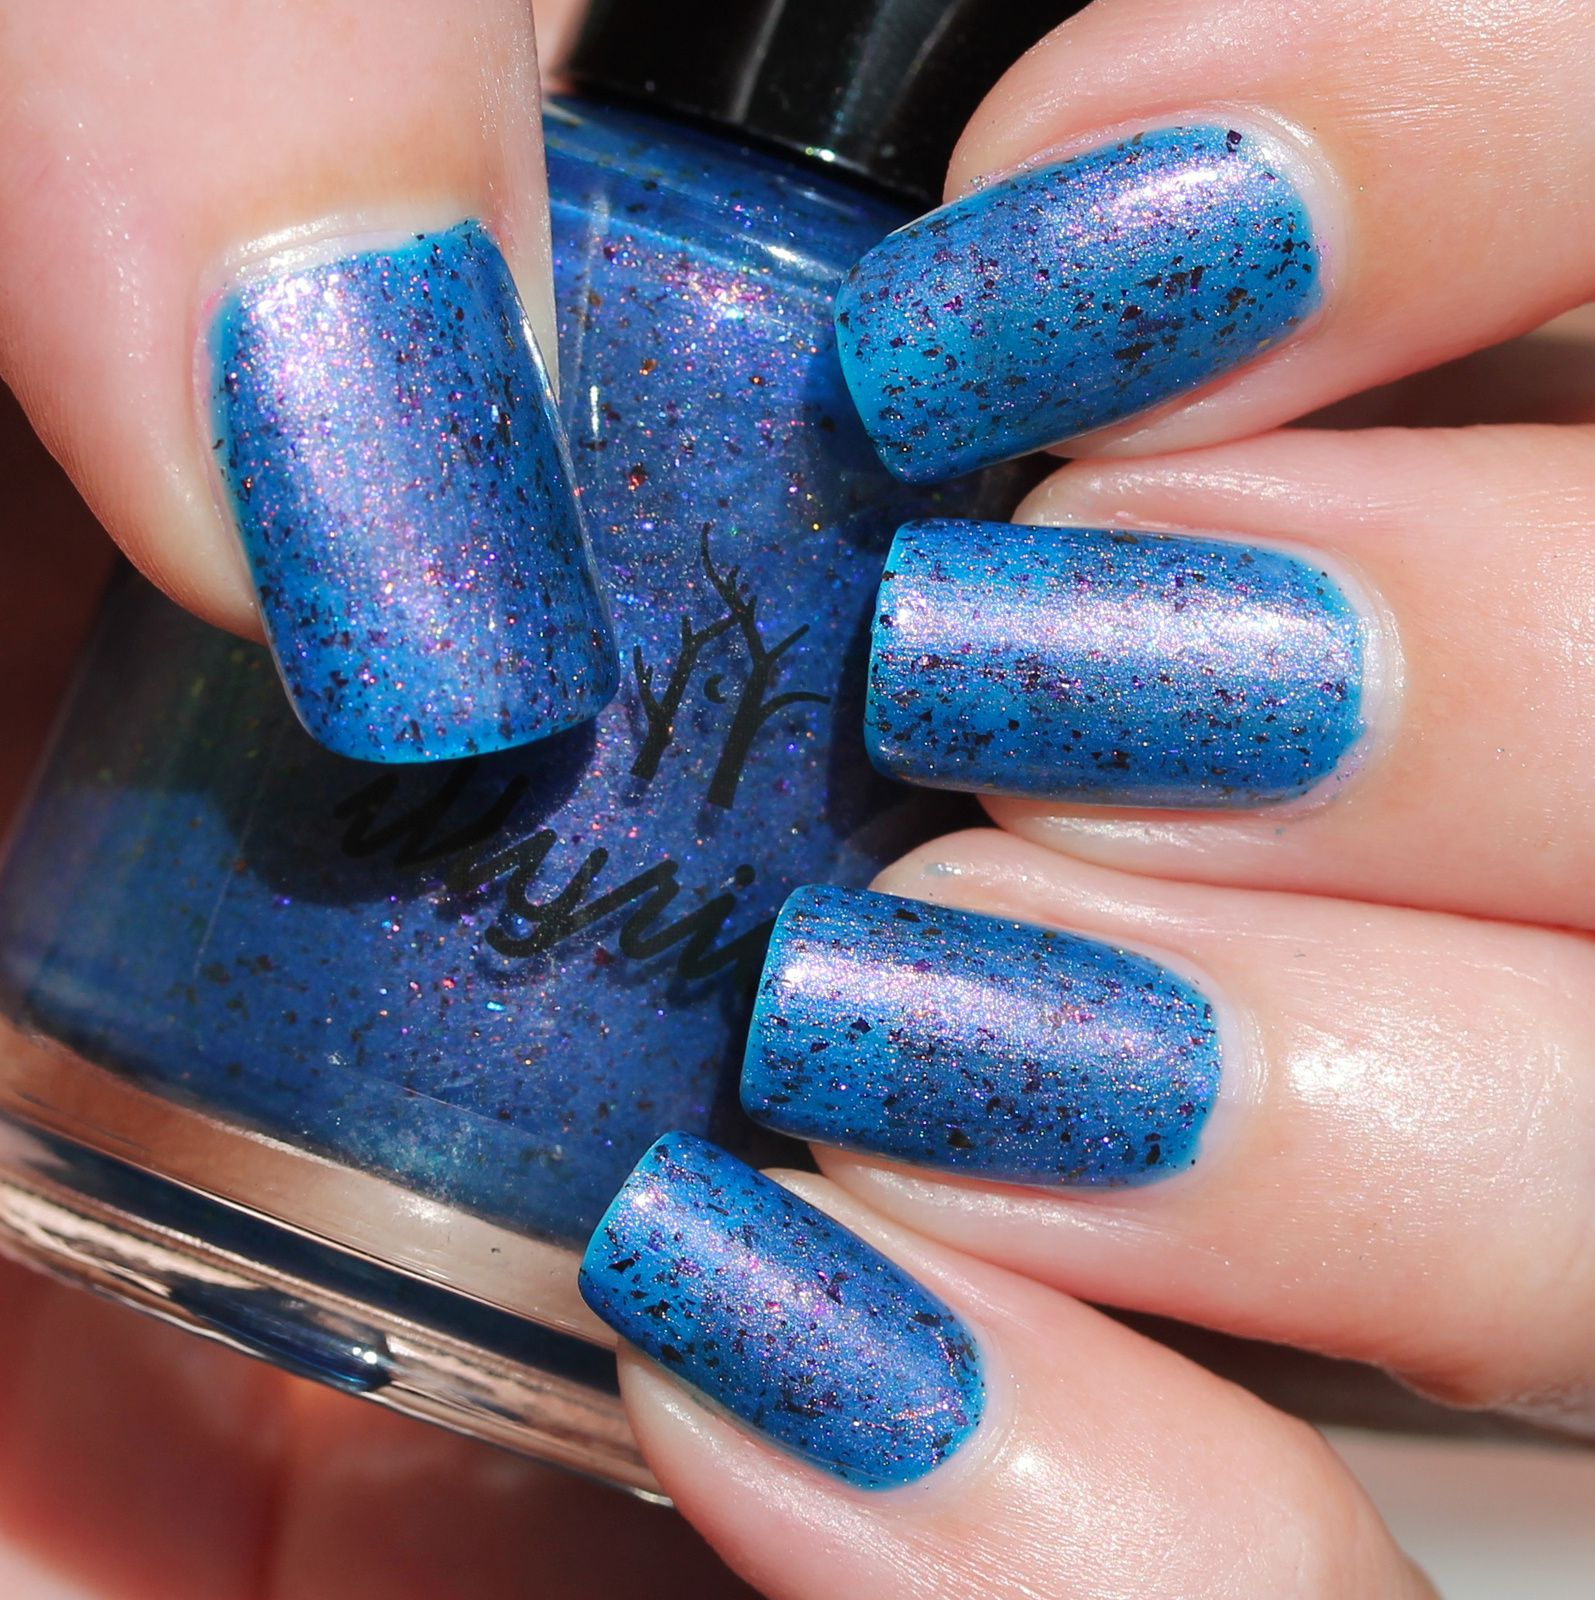 Illyrian Polish Aquata (3 coats, no top coat)